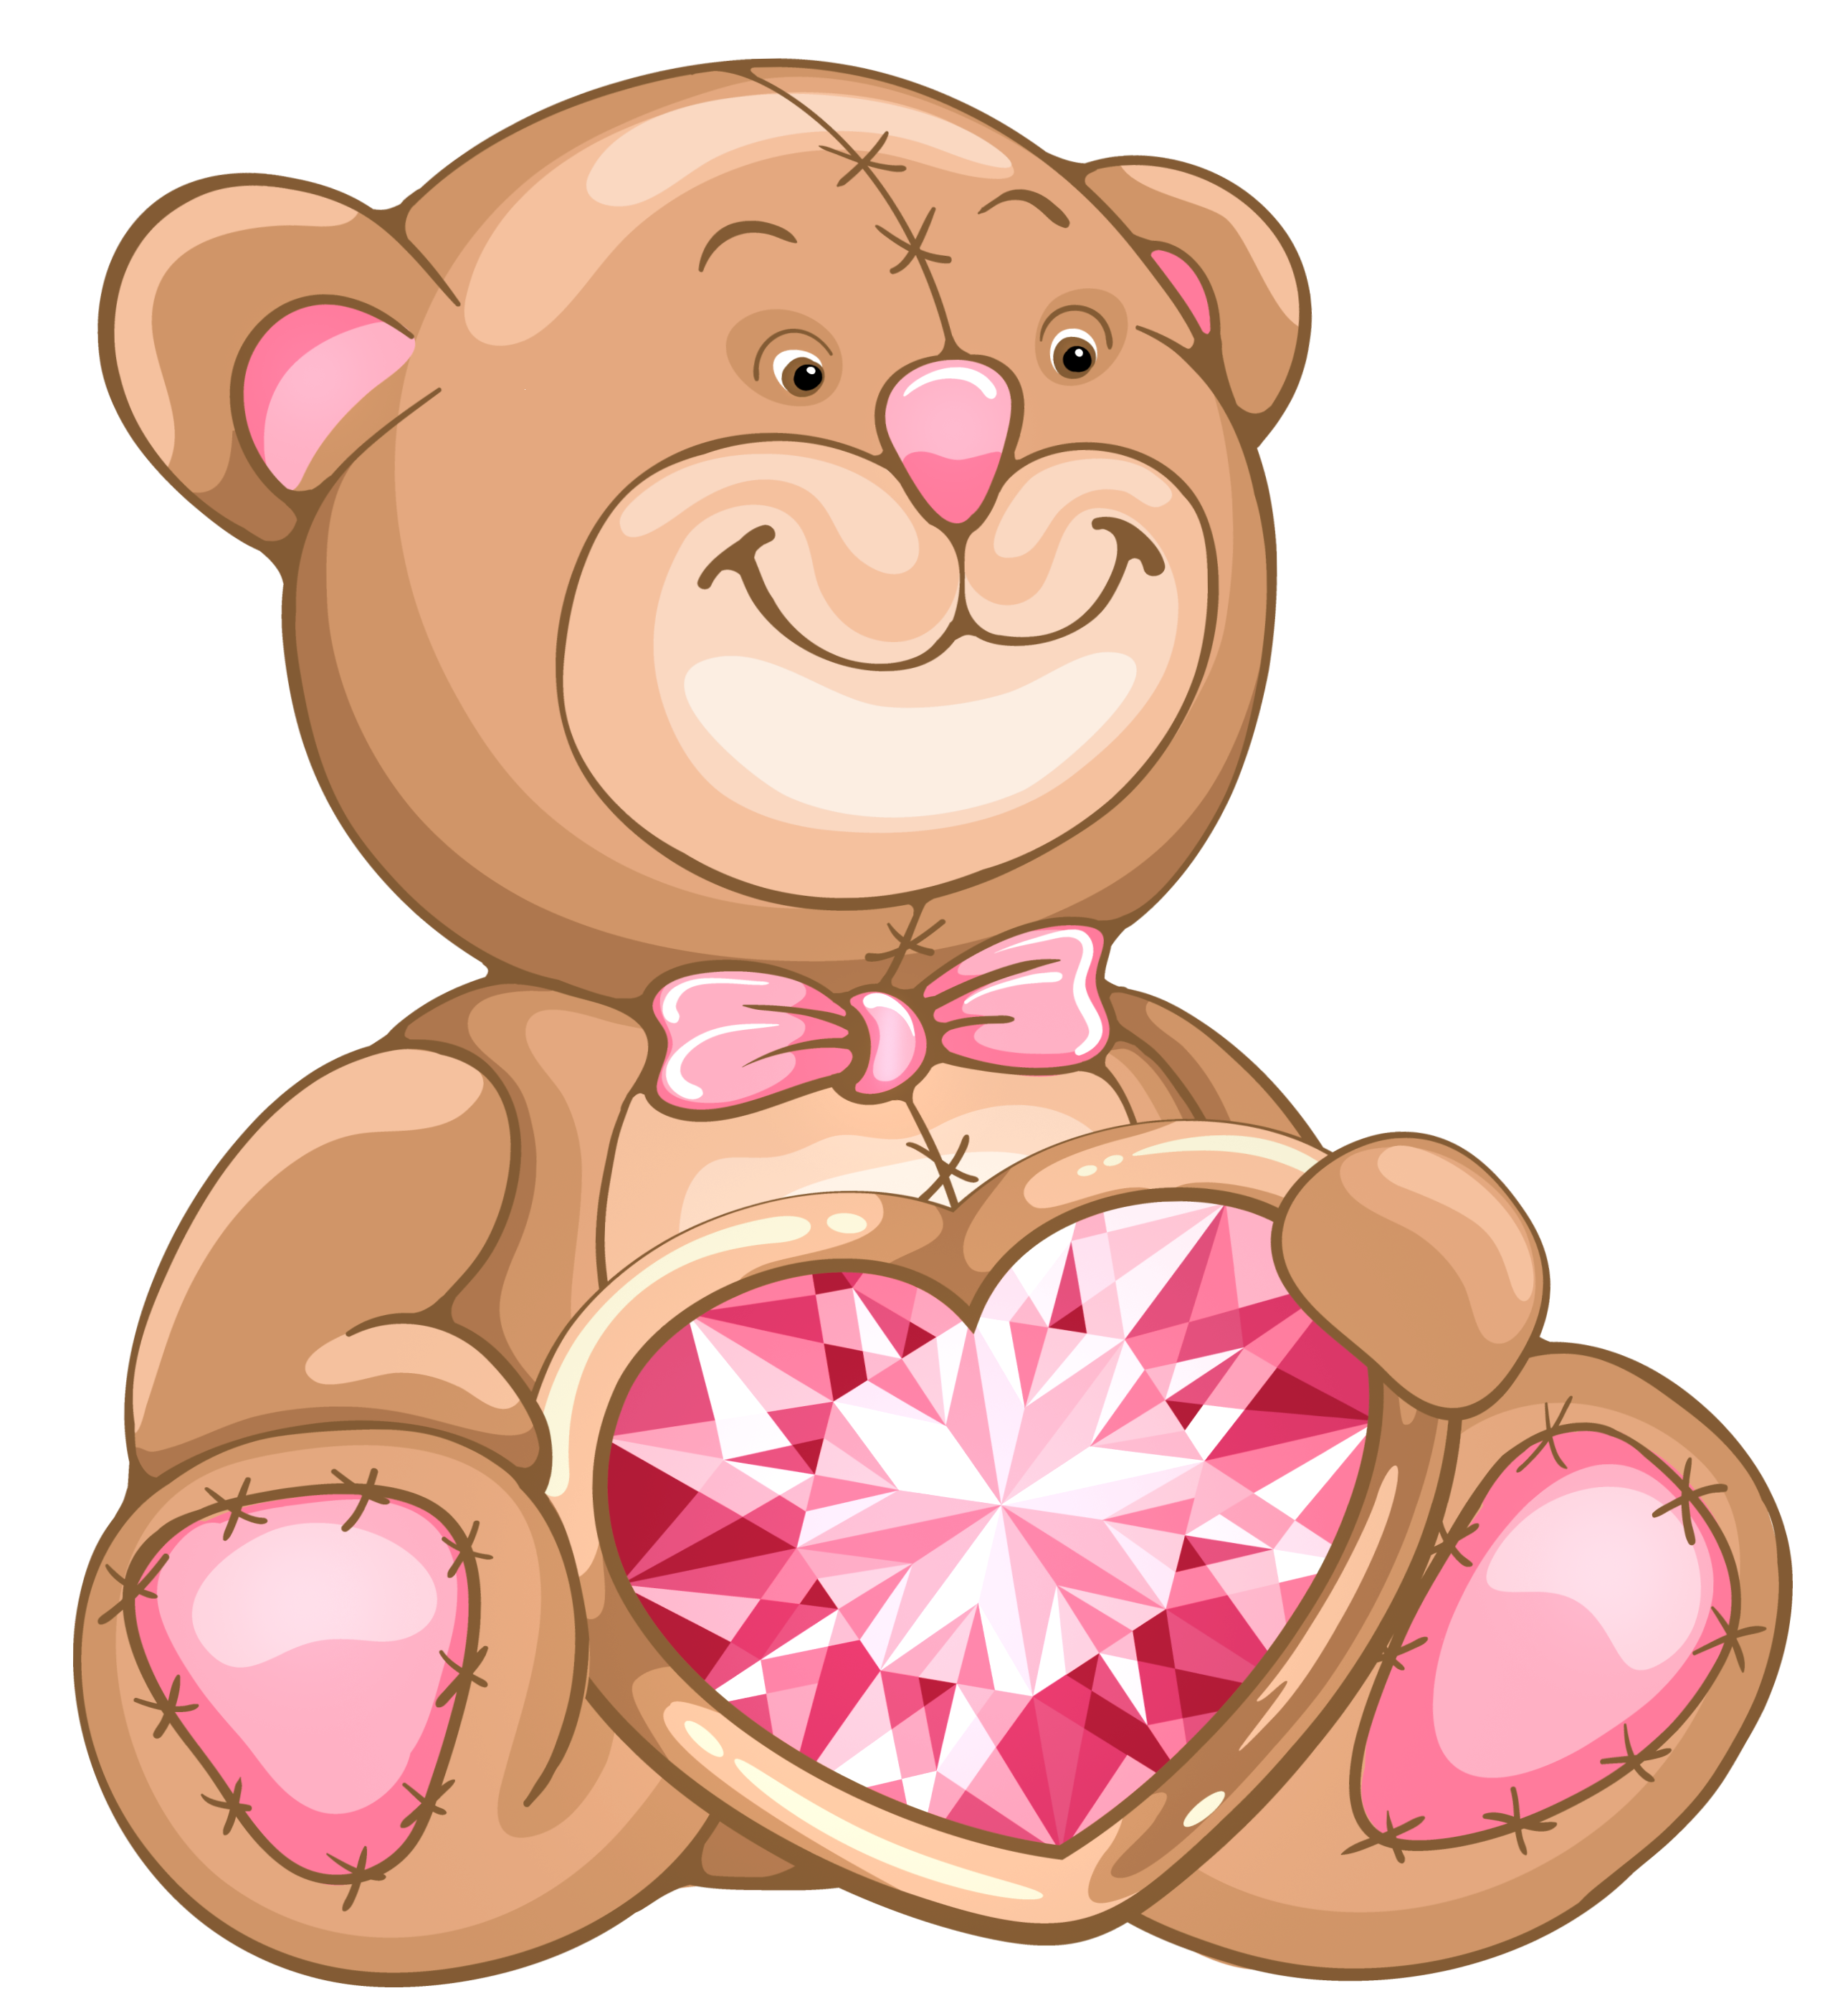 Teddy clipart valentines day teddy bear Full with Diamond View PNG